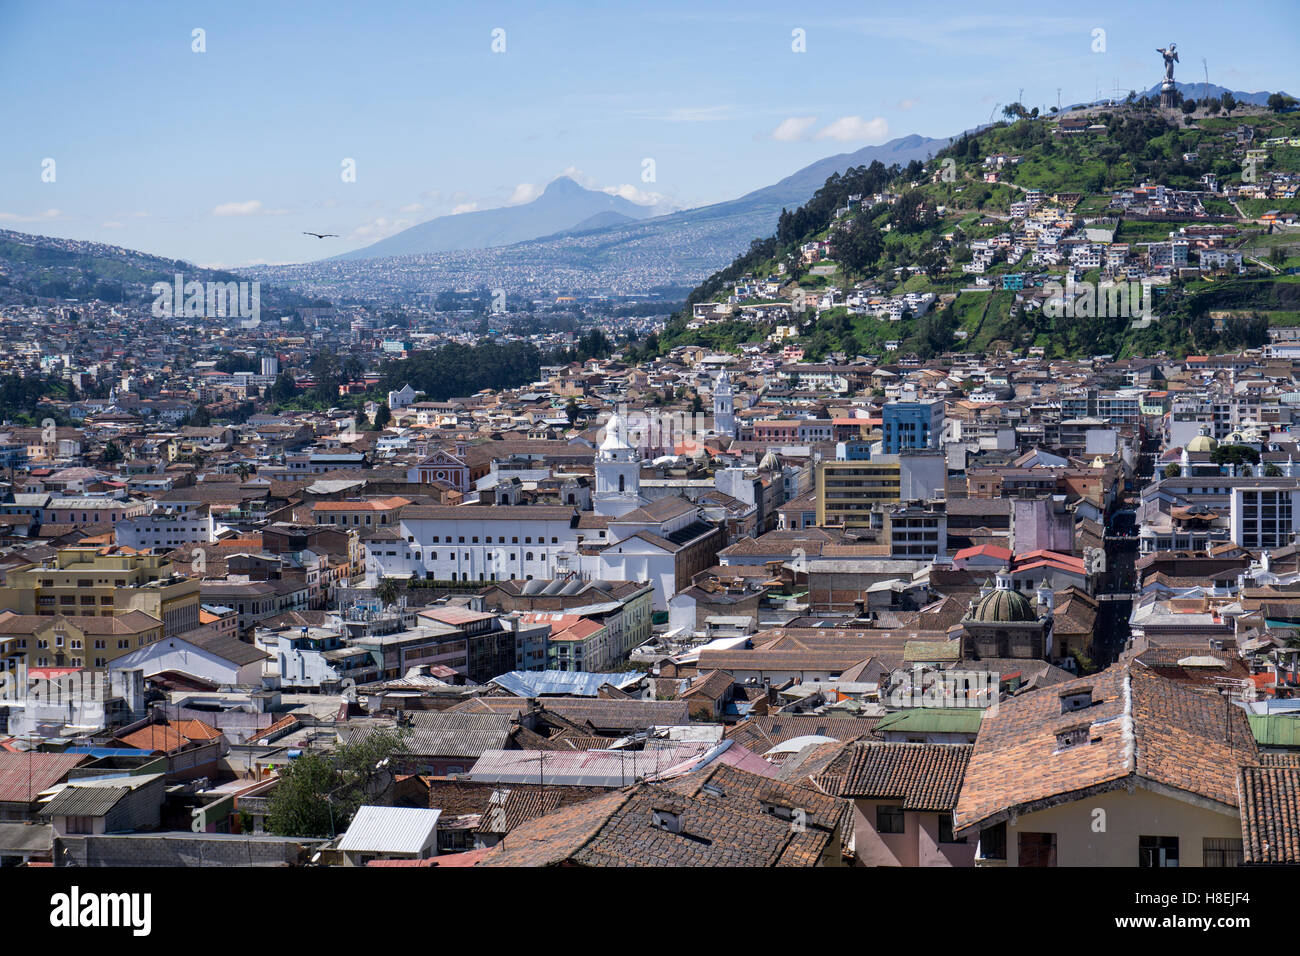 Vue sur la ville, Quito, Equateur, Amérique du Sud Photo Stock